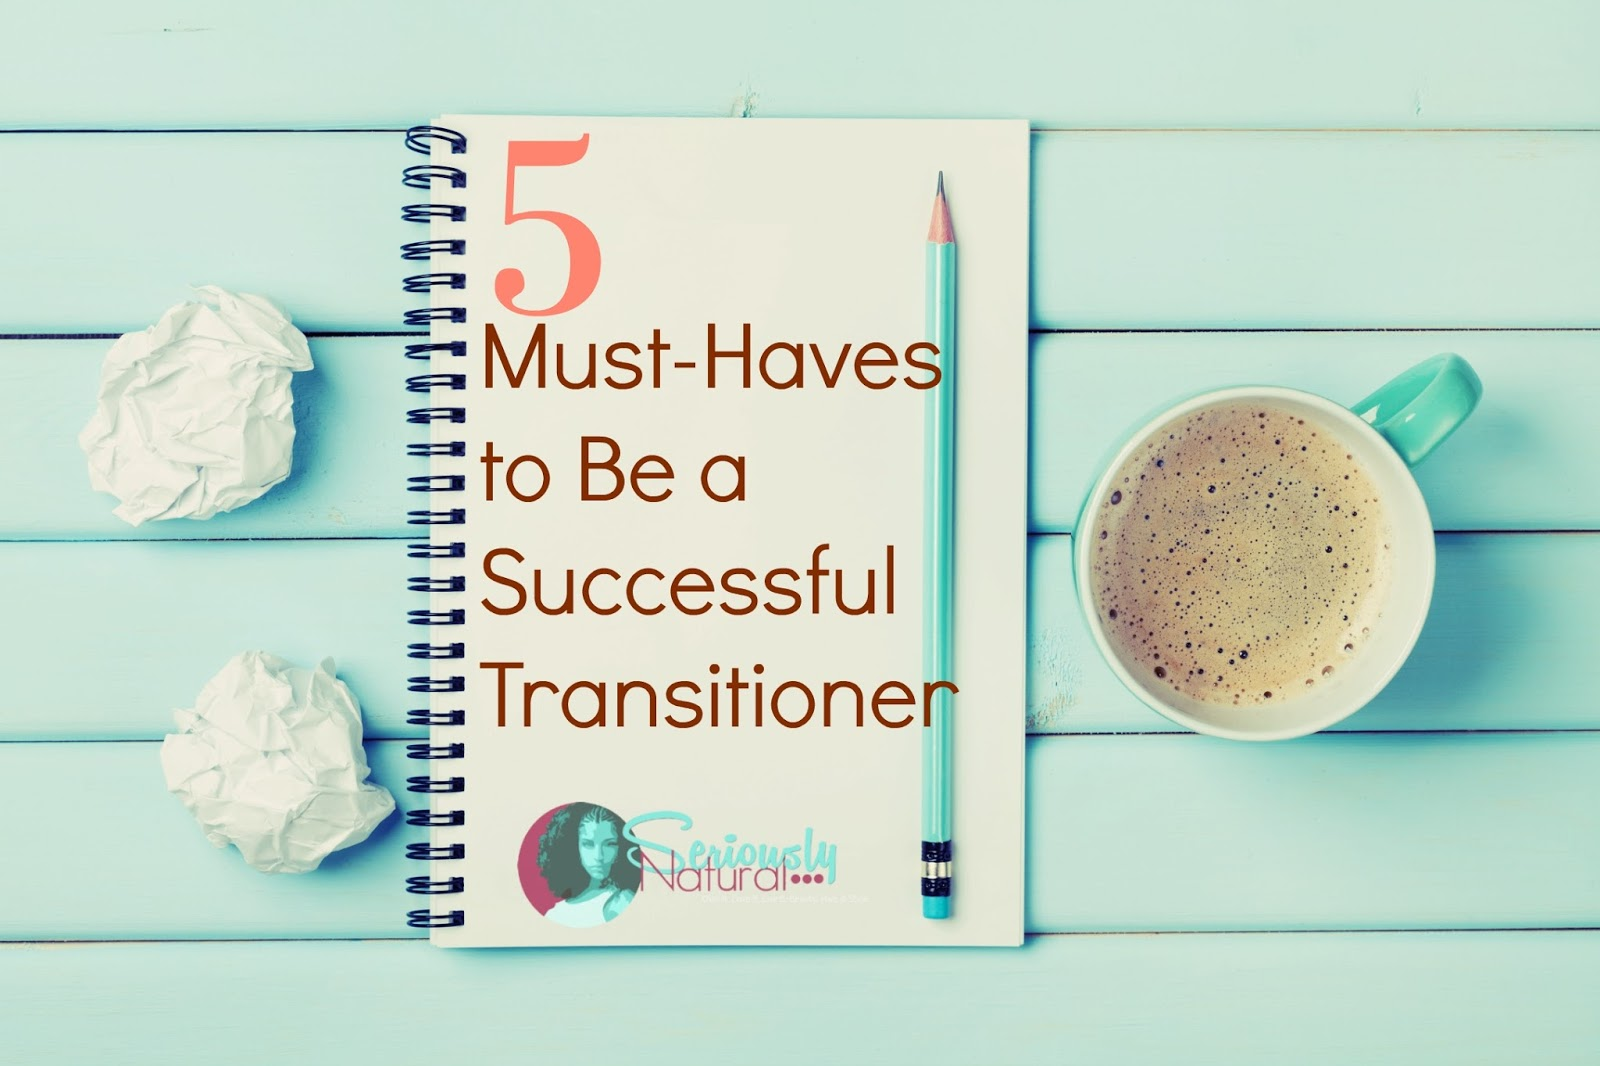 5 Must-Haves to Be a Successful Transitioner